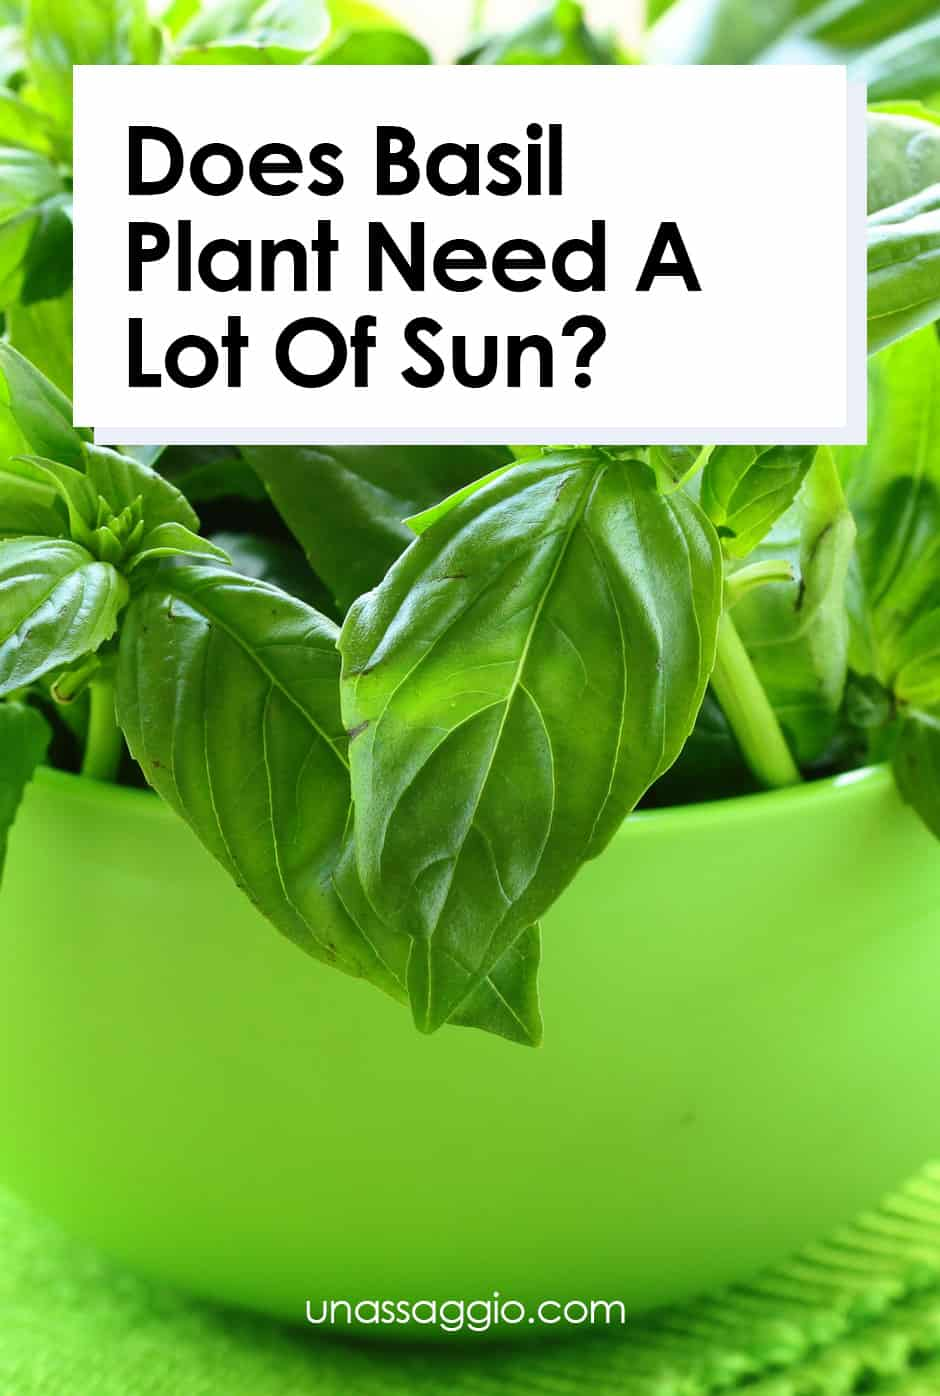 Does Basil Plant Need A Lot Of Sun?